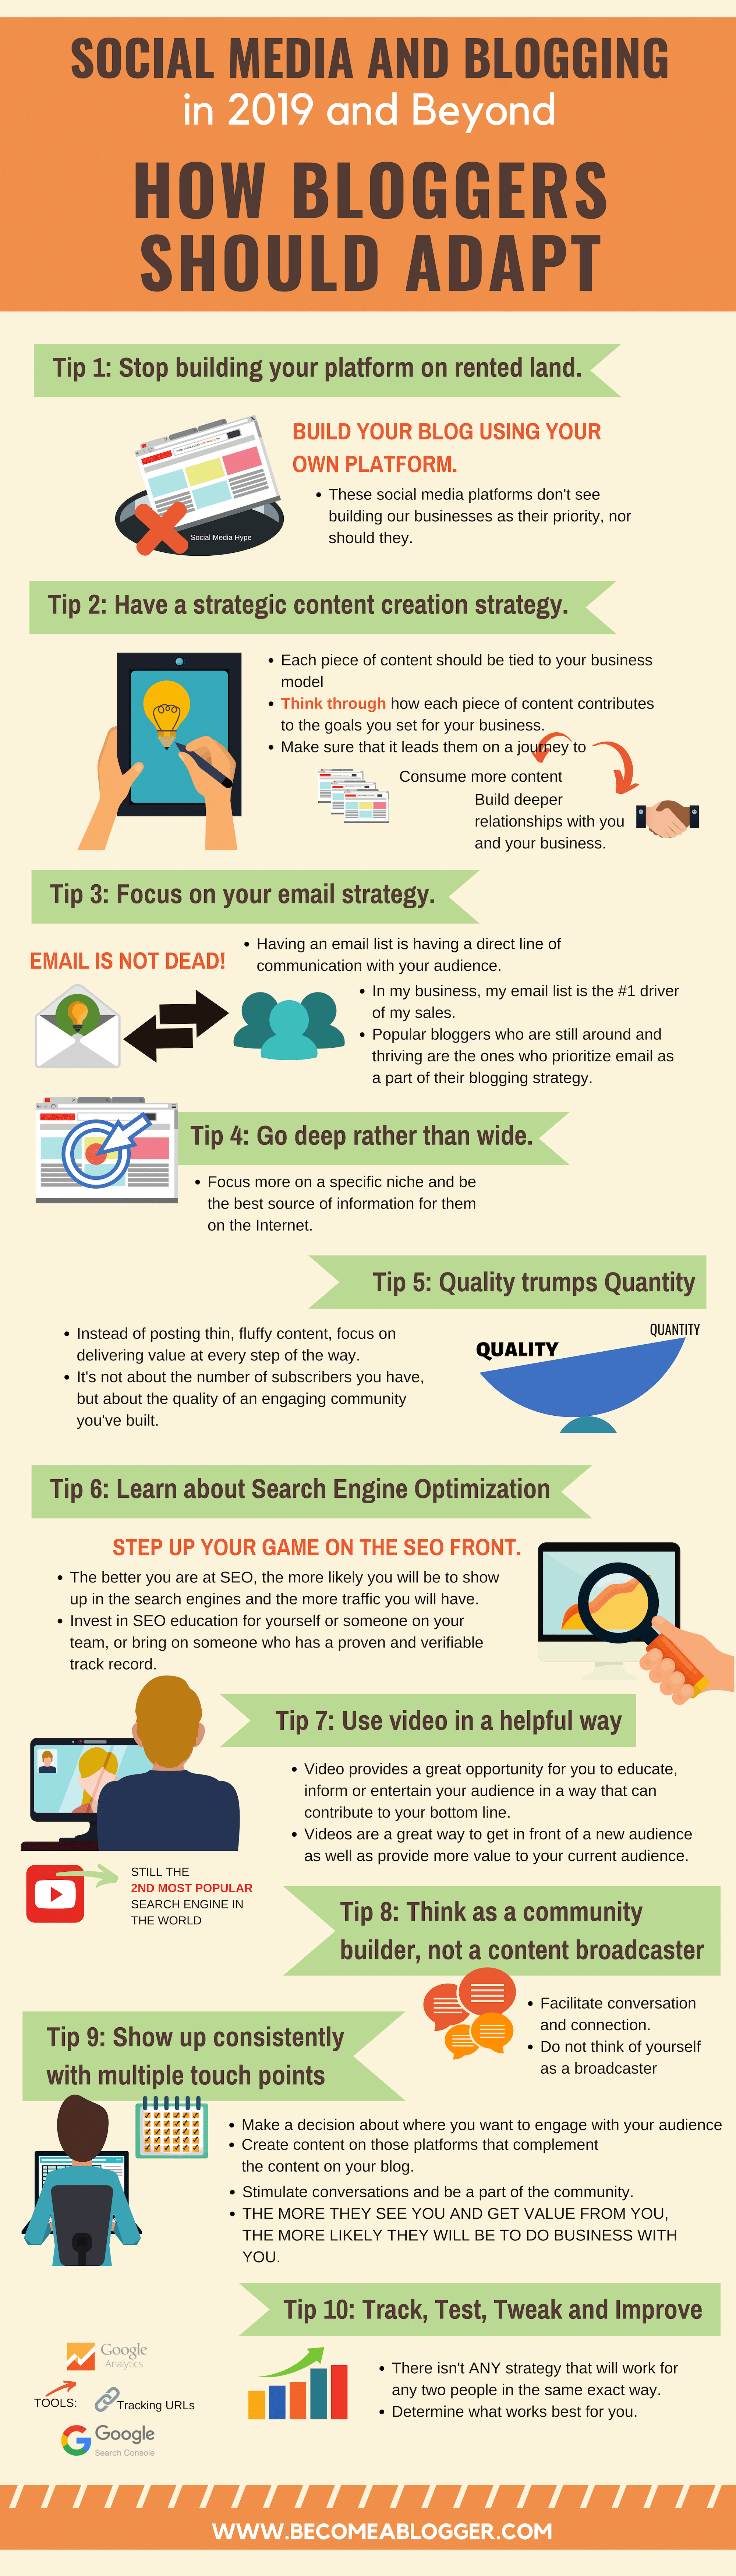 [Infographic] How bloggers Should Adapt